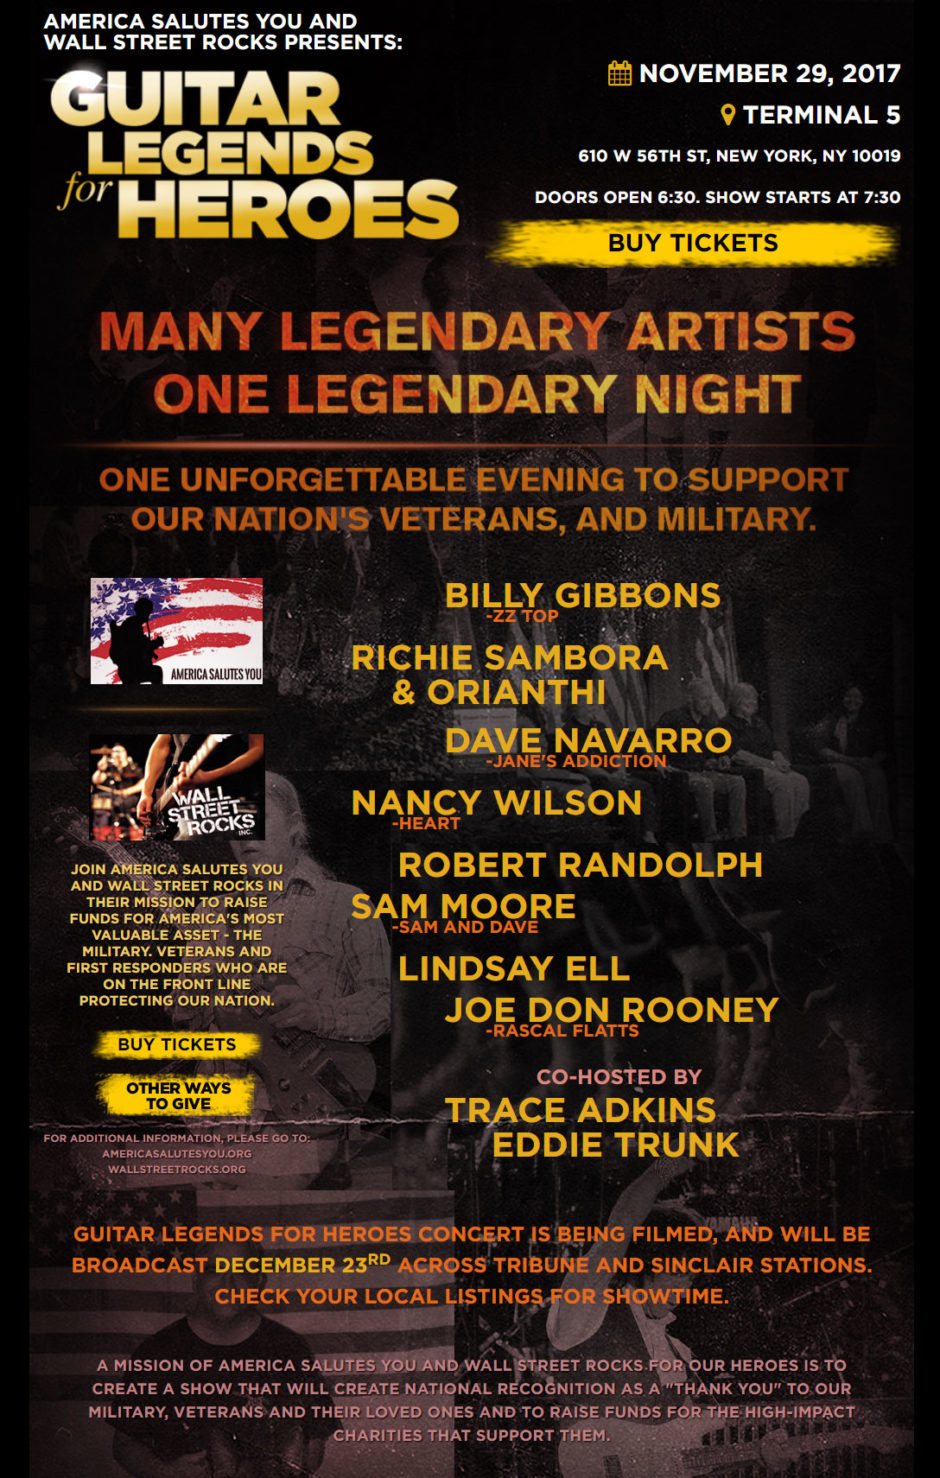 Nyc Wednesday November 29 Guitar Legends For Heroes Show Billy